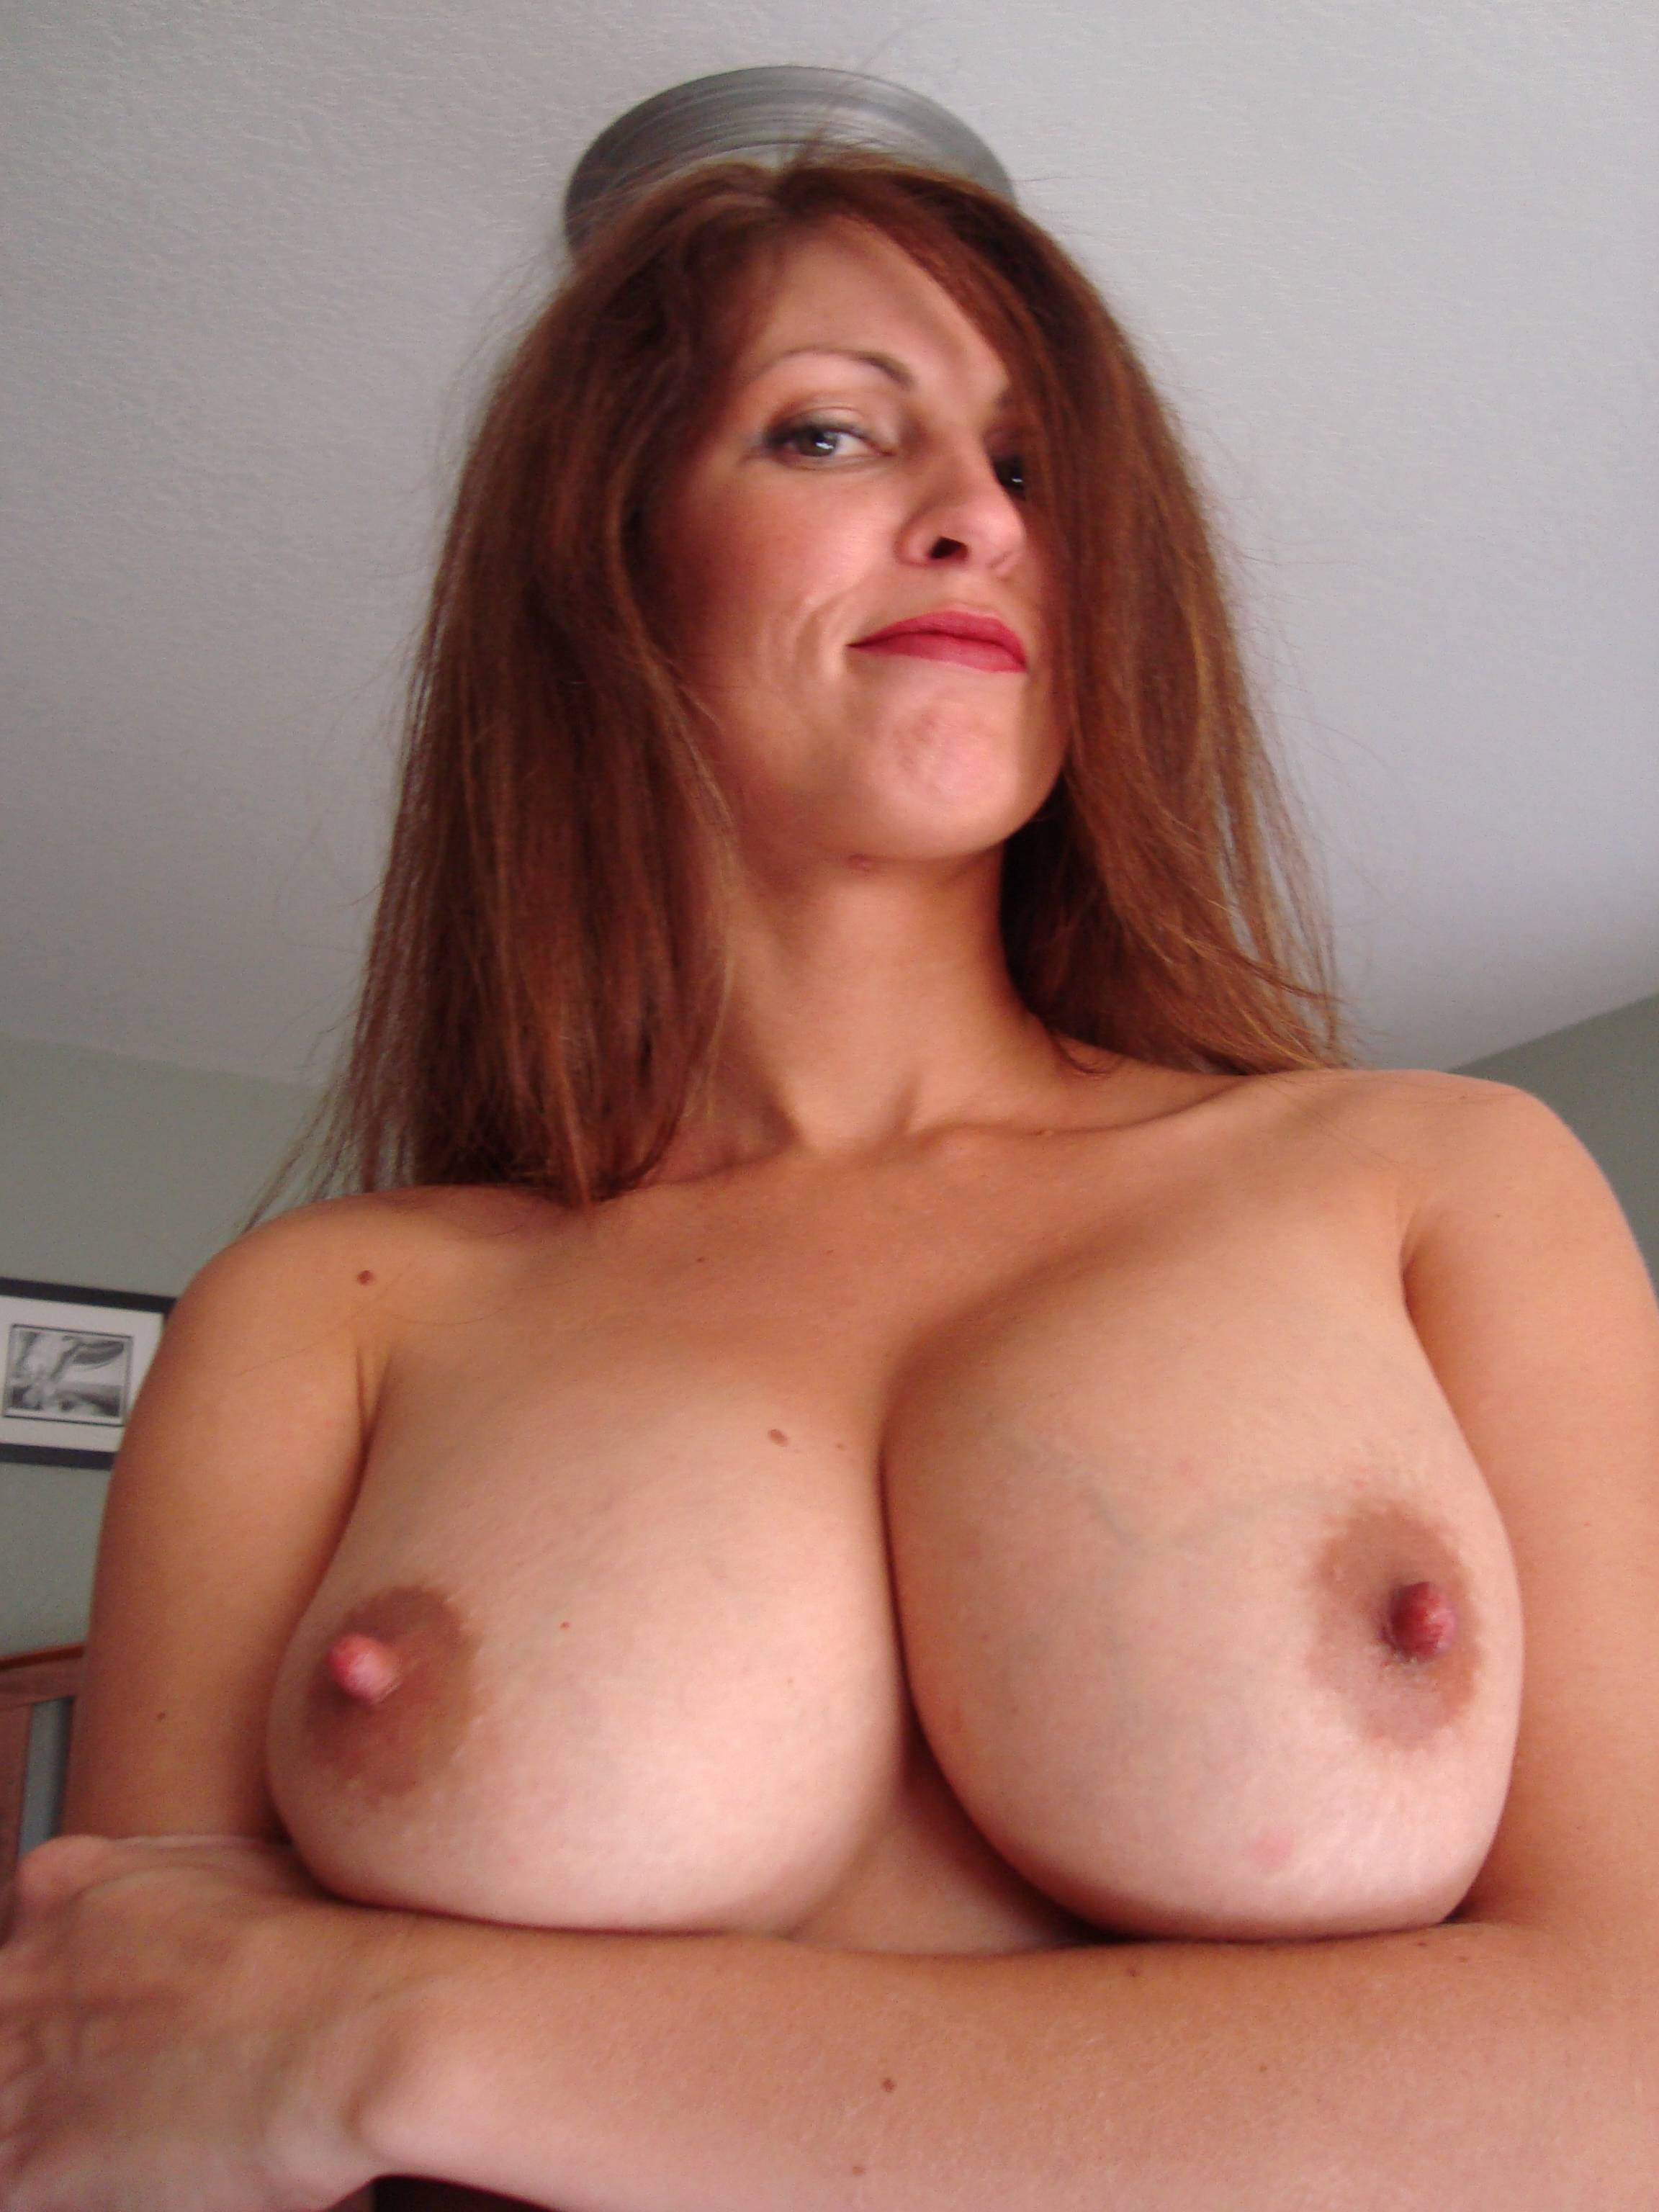 Mature big breast nude opinion